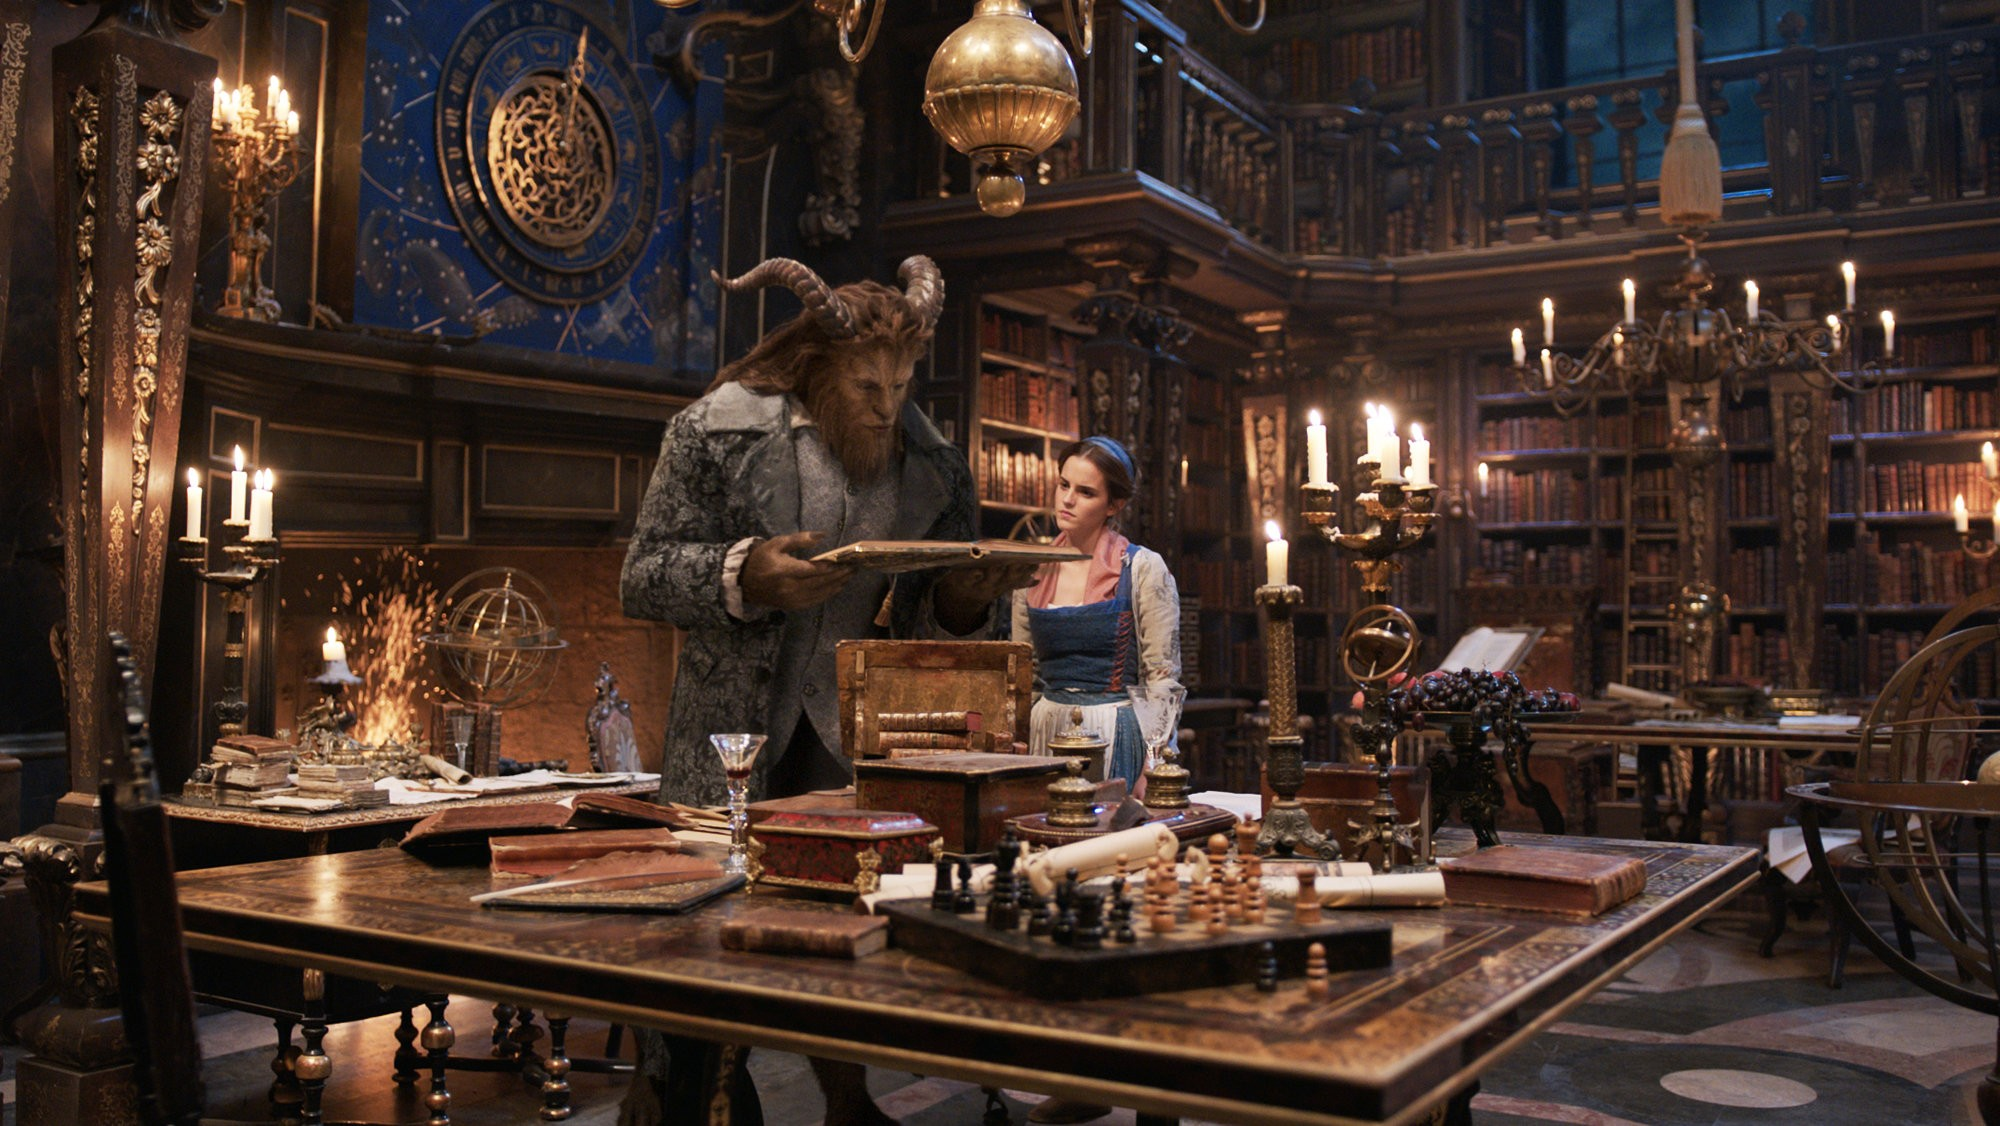 Large beauty and the beast st 7 jpg sd high   2016 disney enterprises  inc  all rights reserved